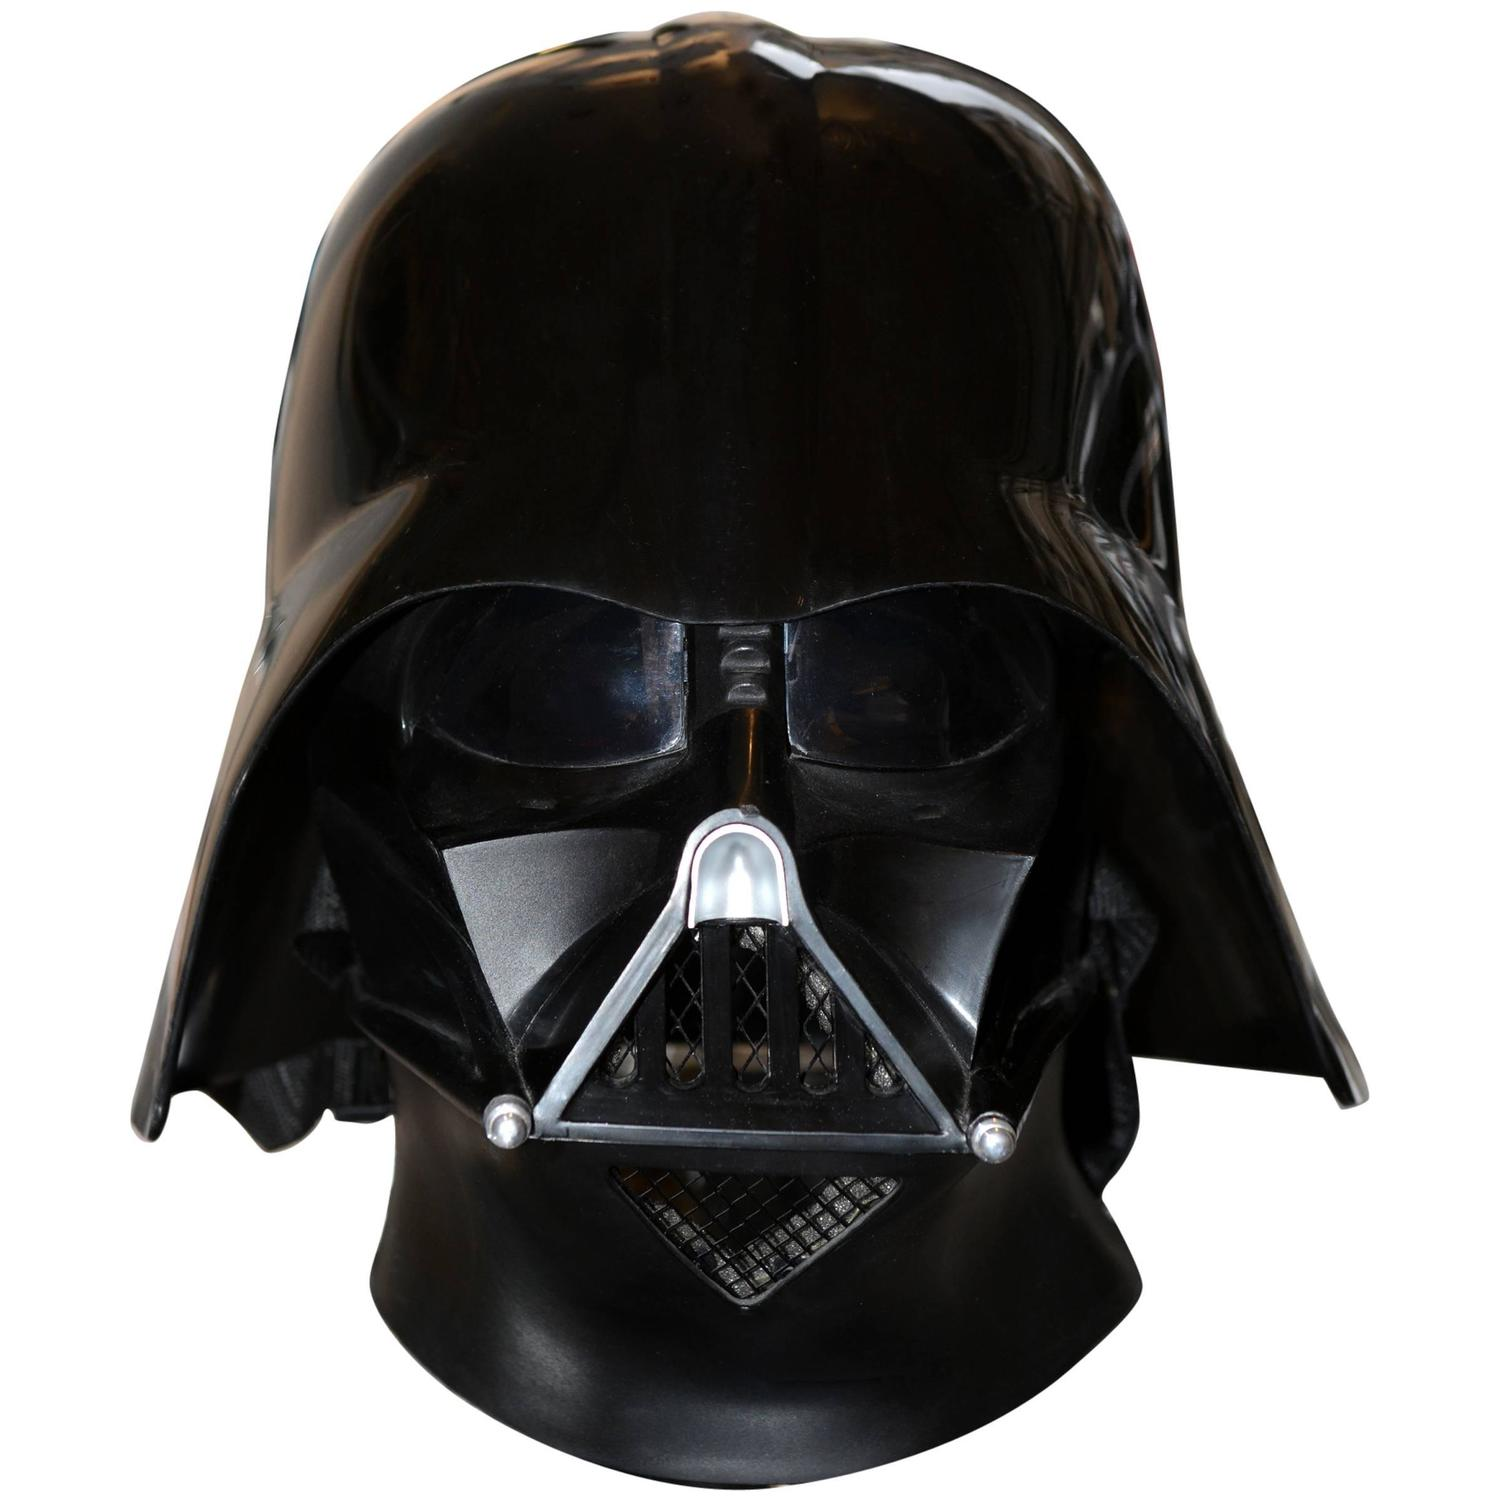 helmet star wars dark vador for sale at 1stdibs. Black Bedroom Furniture Sets. Home Design Ideas